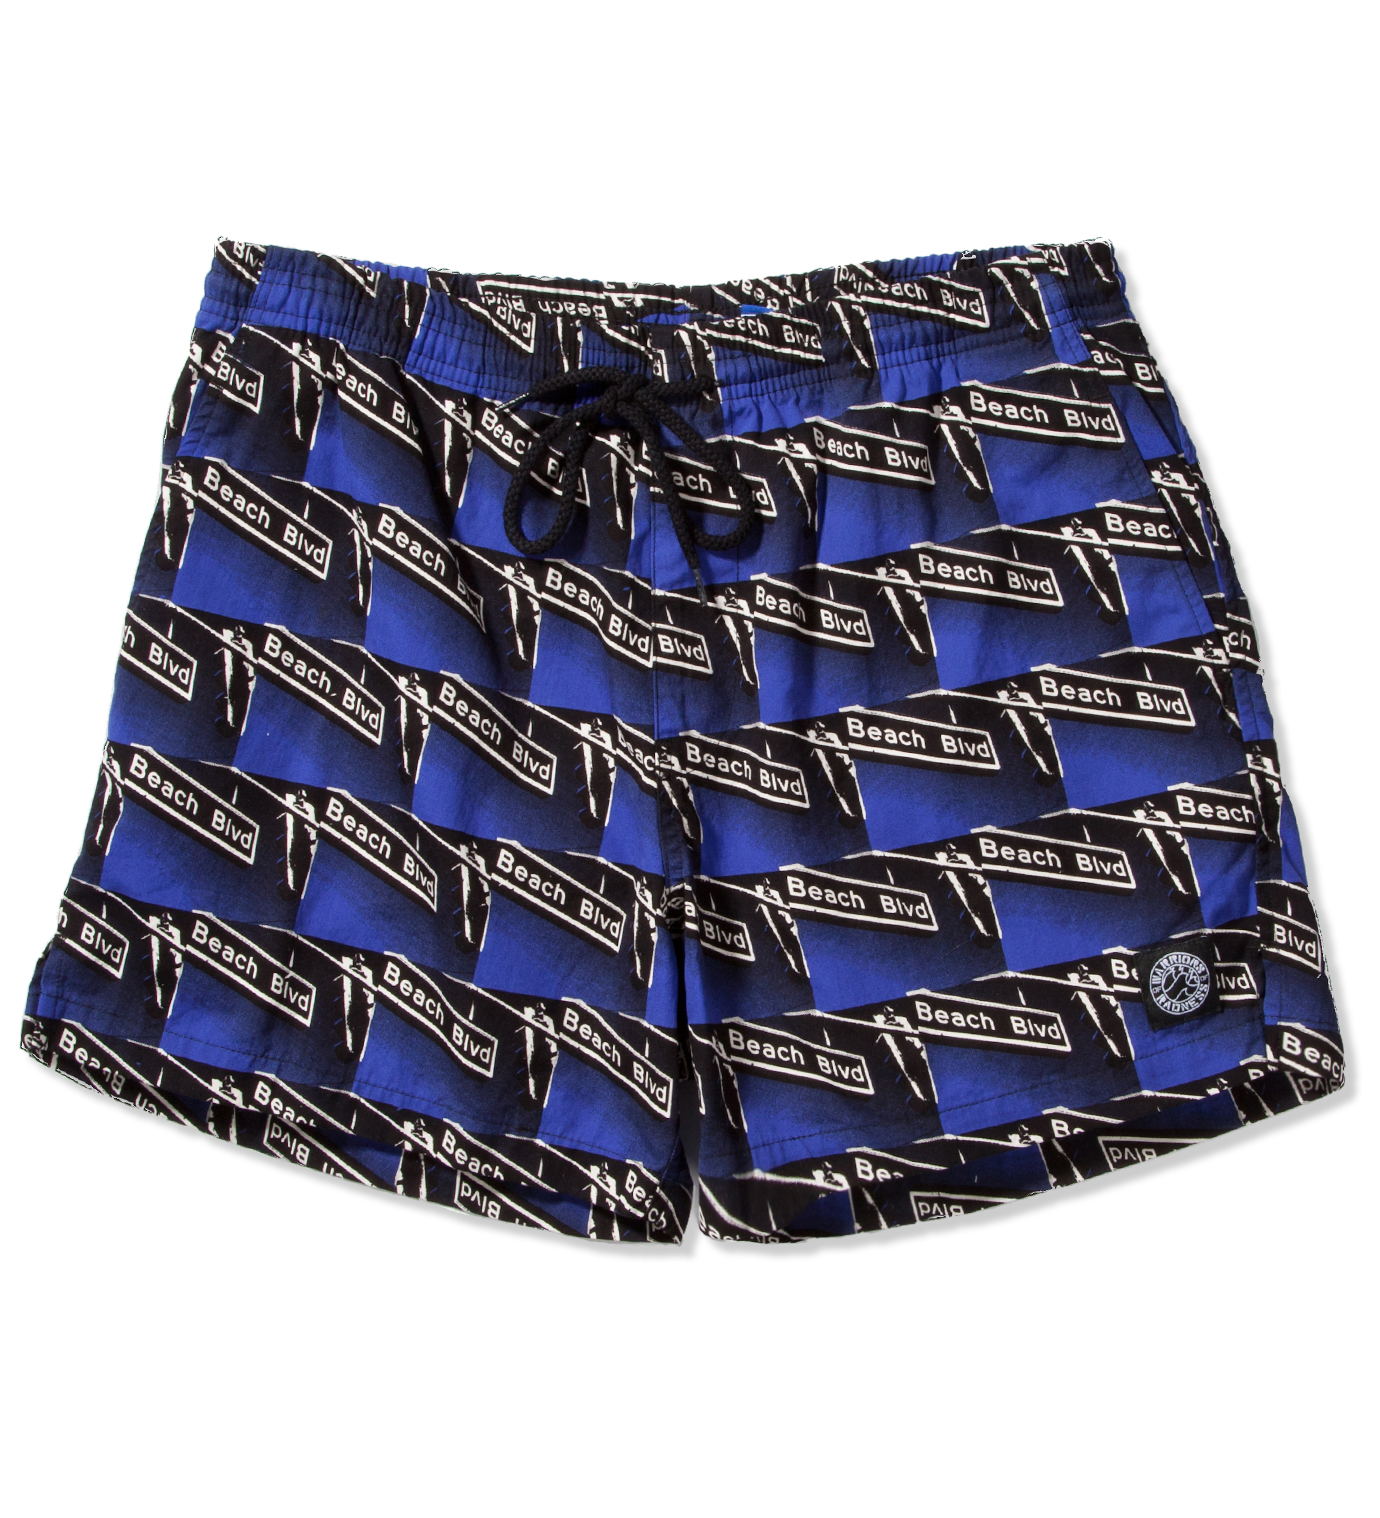 Warriors of Radness Blue Beach Blvd Shorts